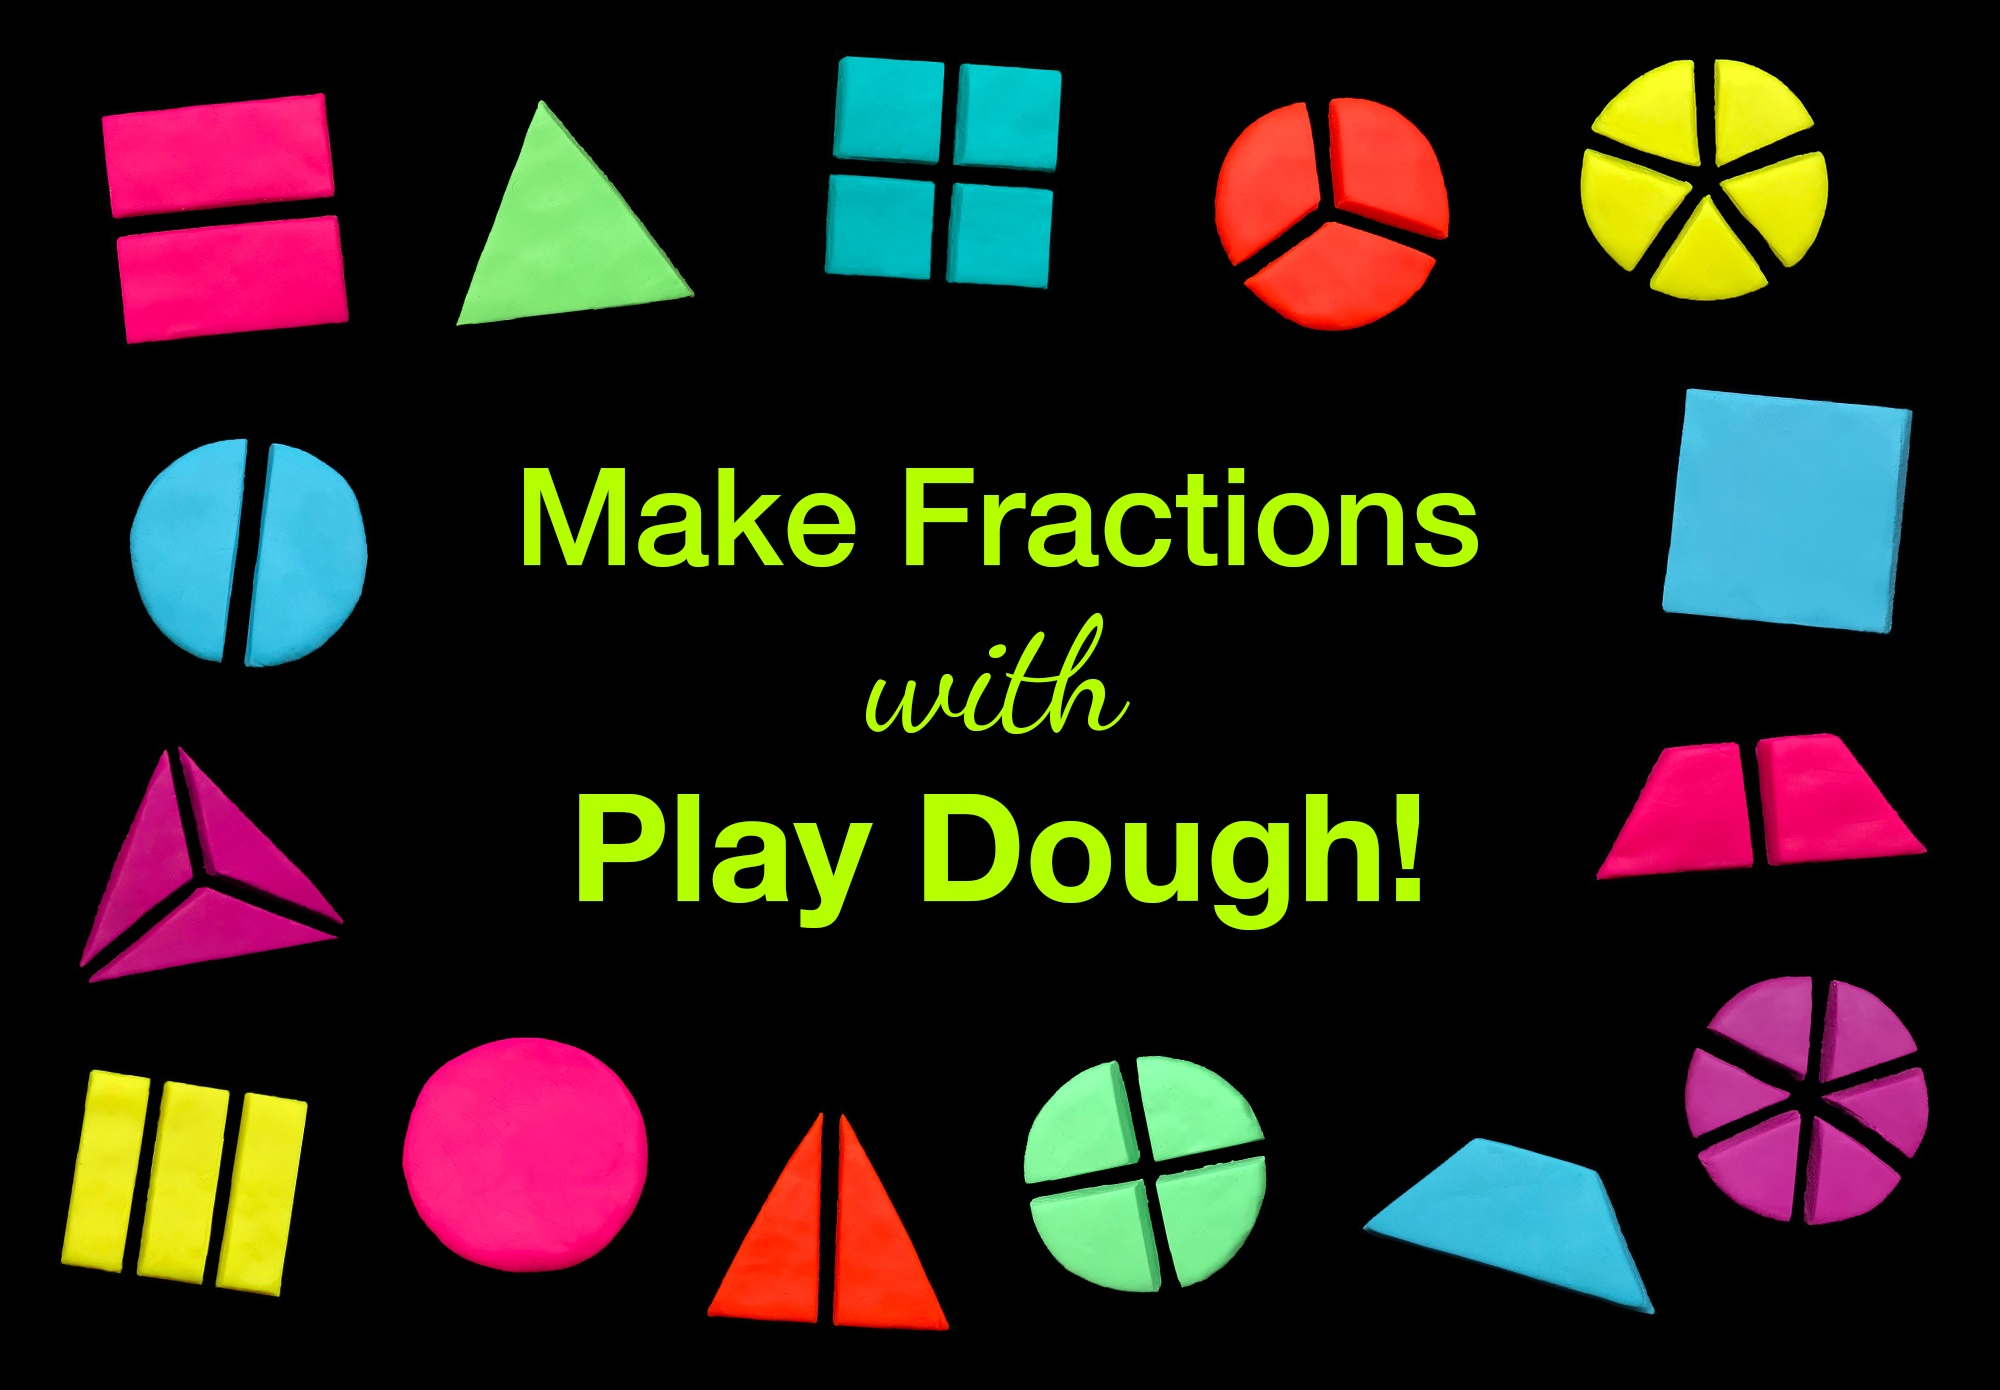 Fractions with Play Dough